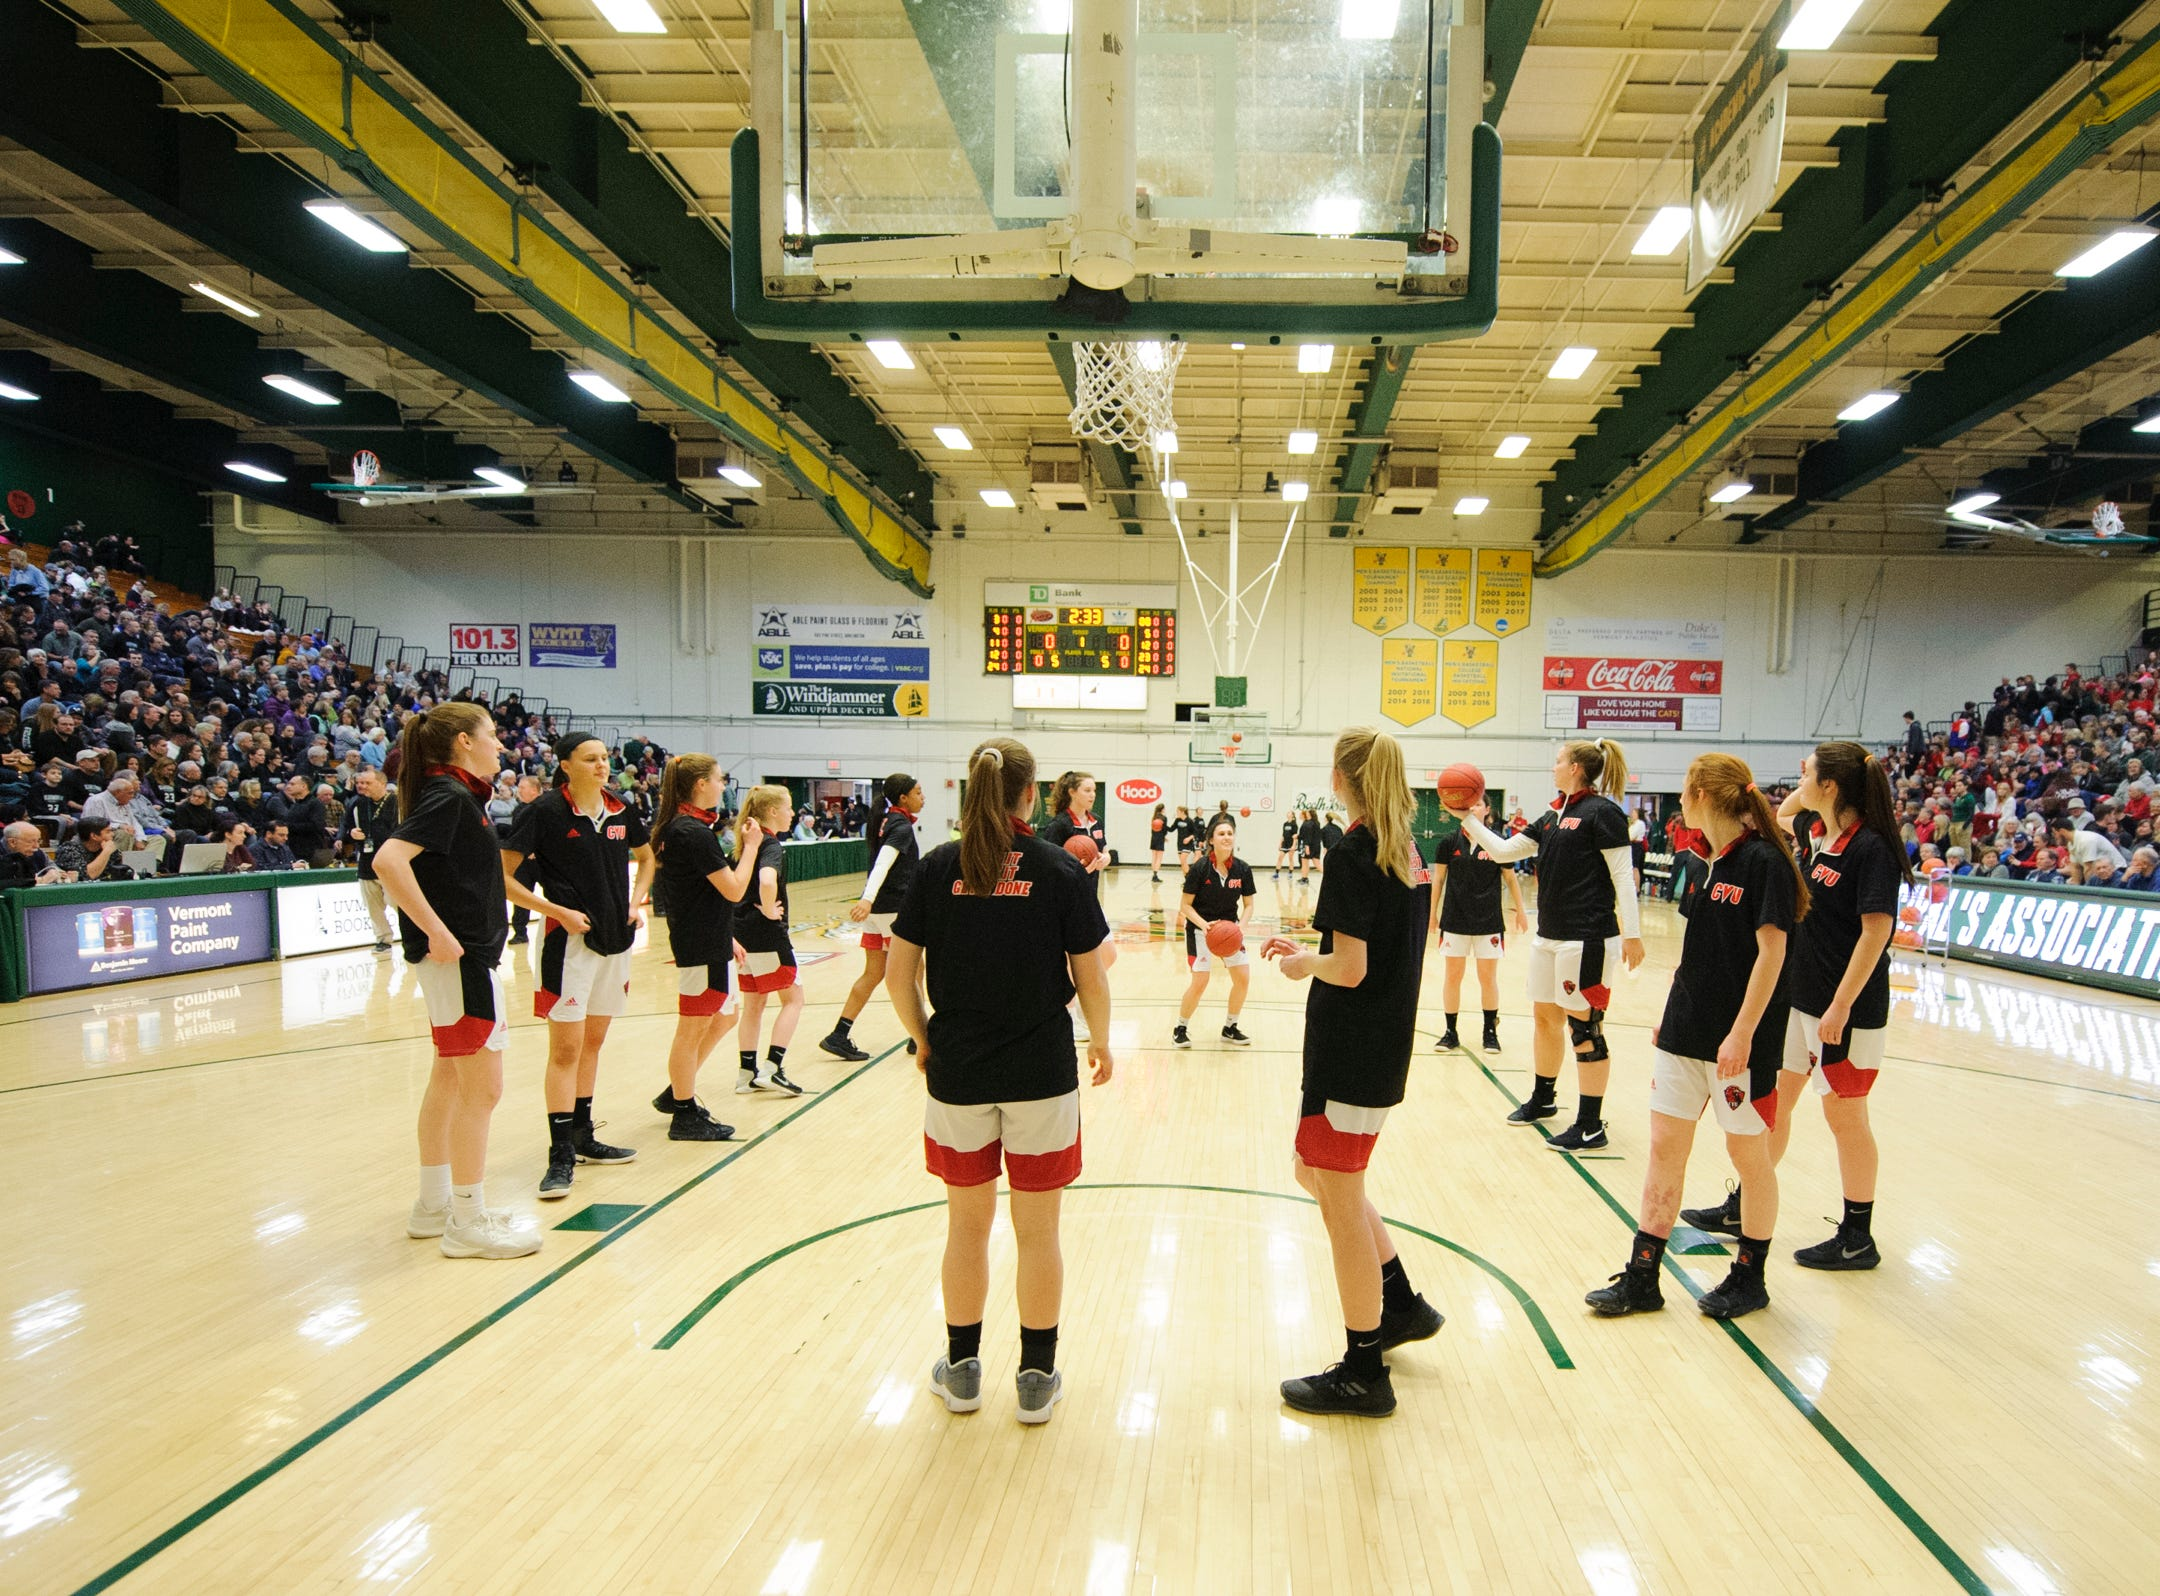 CVU warms up during the division I girls basketball championship basketball game between the St. Johnsbury Hilltoppers and the Champlain Valley Union Redhawks at Patrick Gym on Sunday afternoon March 10, 2019 in Burlington, Vermont.